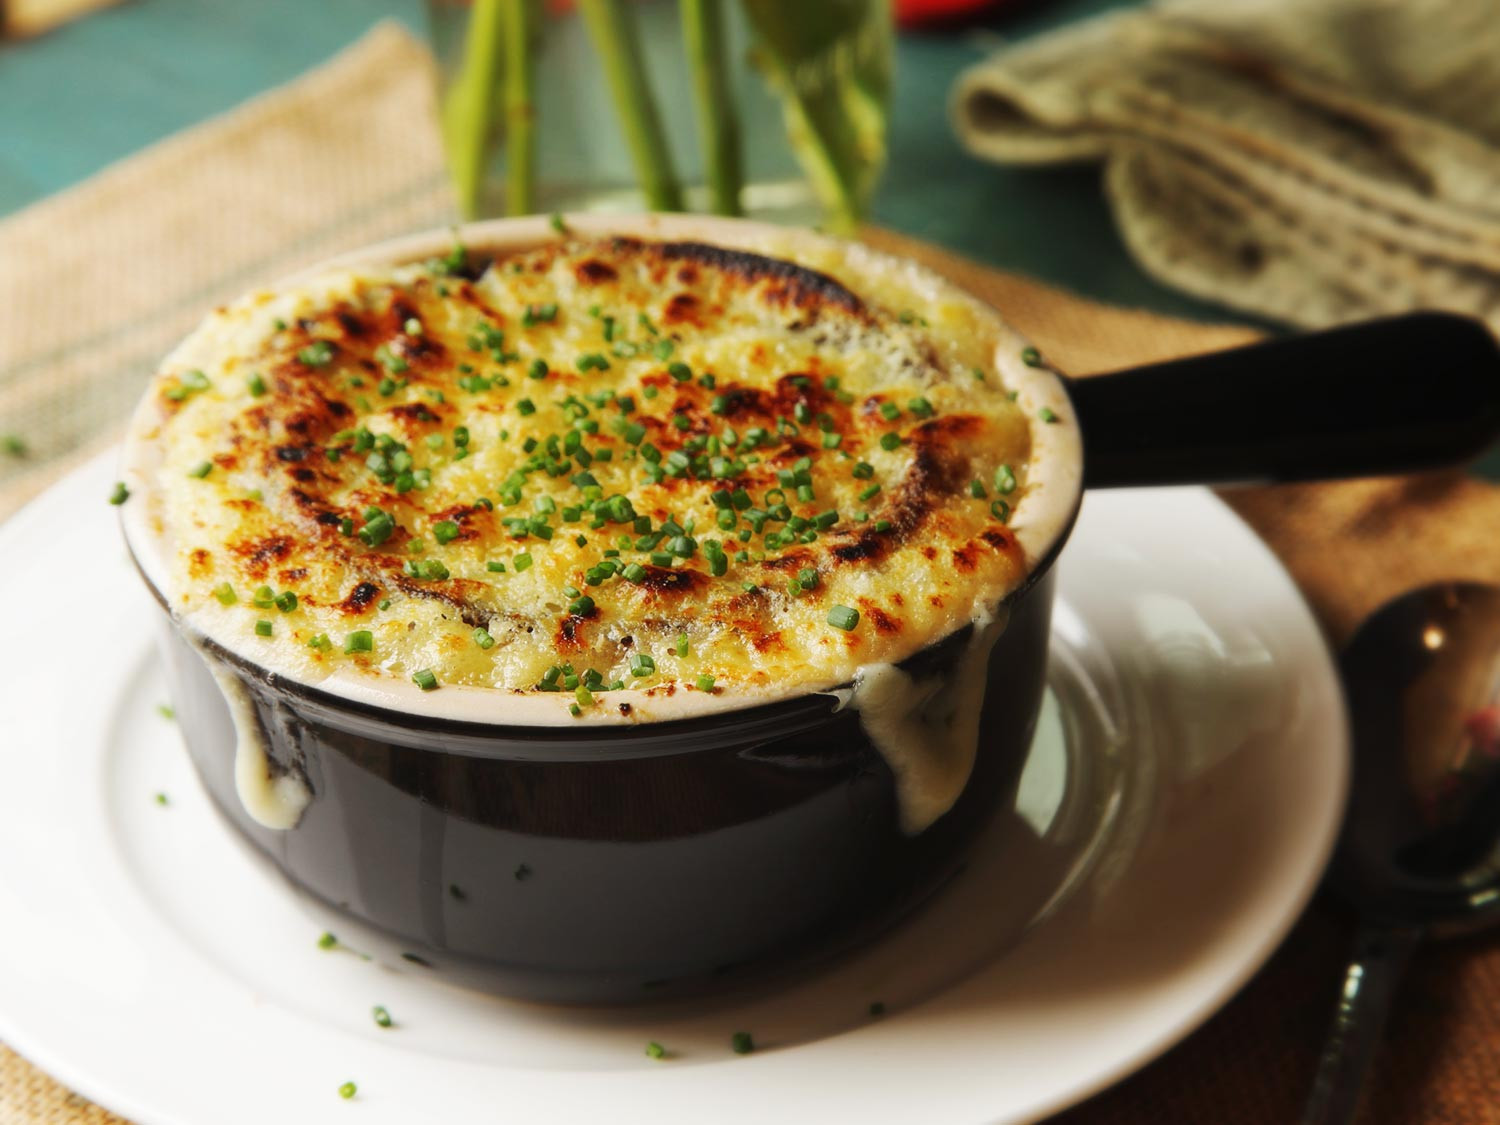 French Onion Soup Recipe  The Food Lab Use the Pressure Cooker for Quick